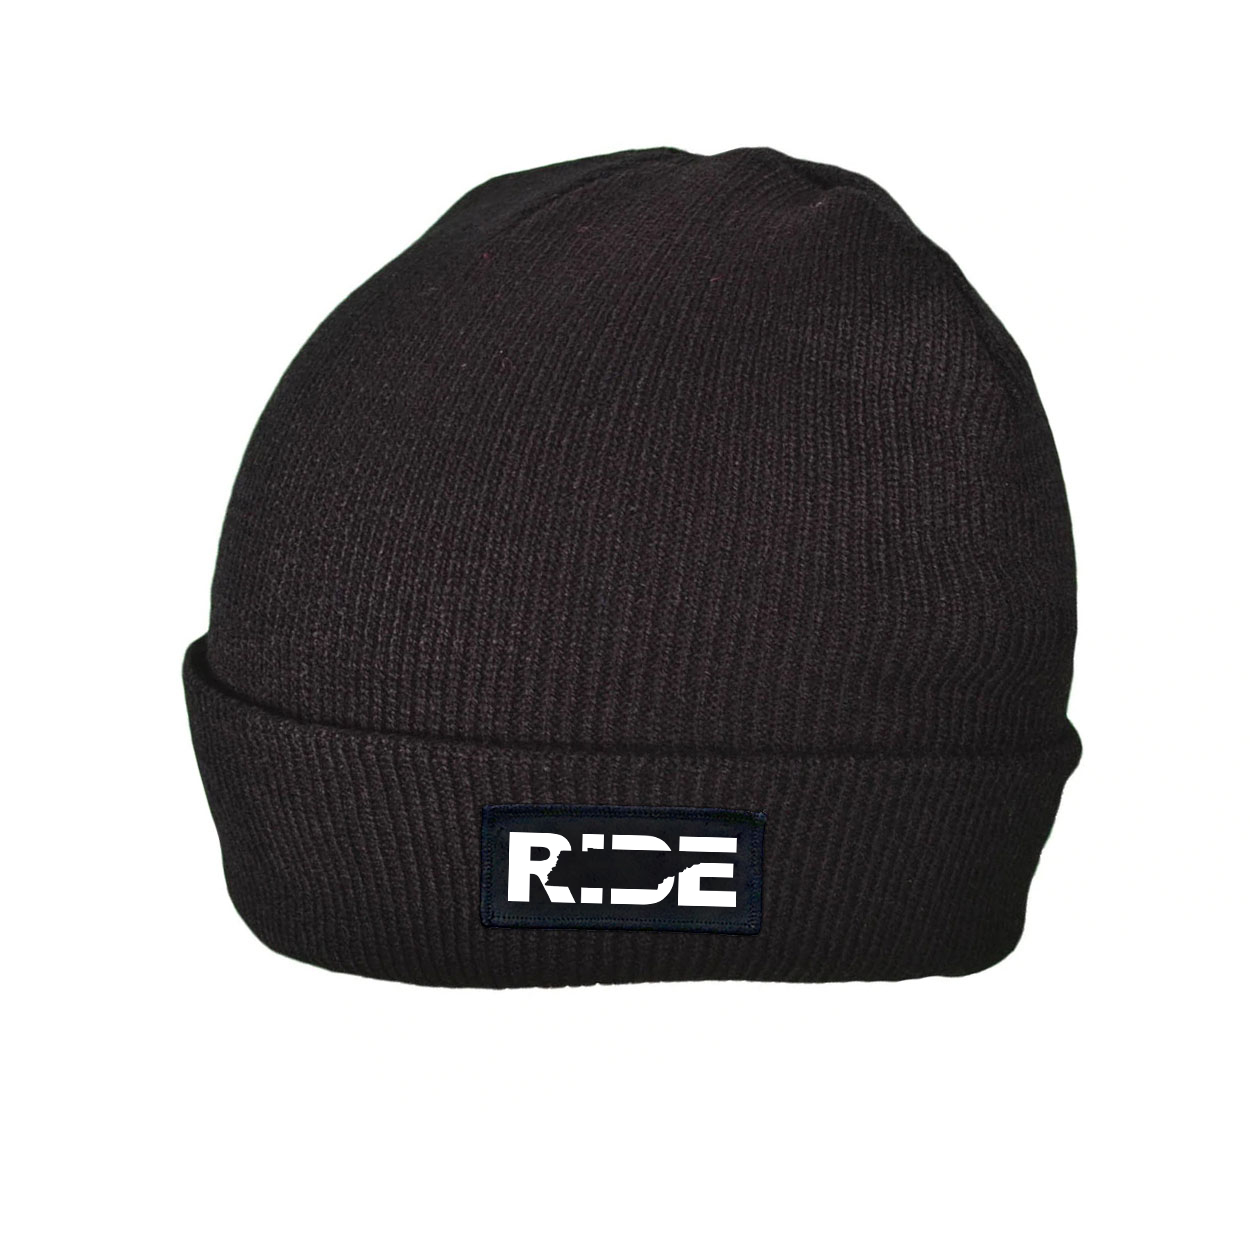 Ride Tennessee Night Out Woven Patch Roll Up Skully Beanie Black (White Logo)